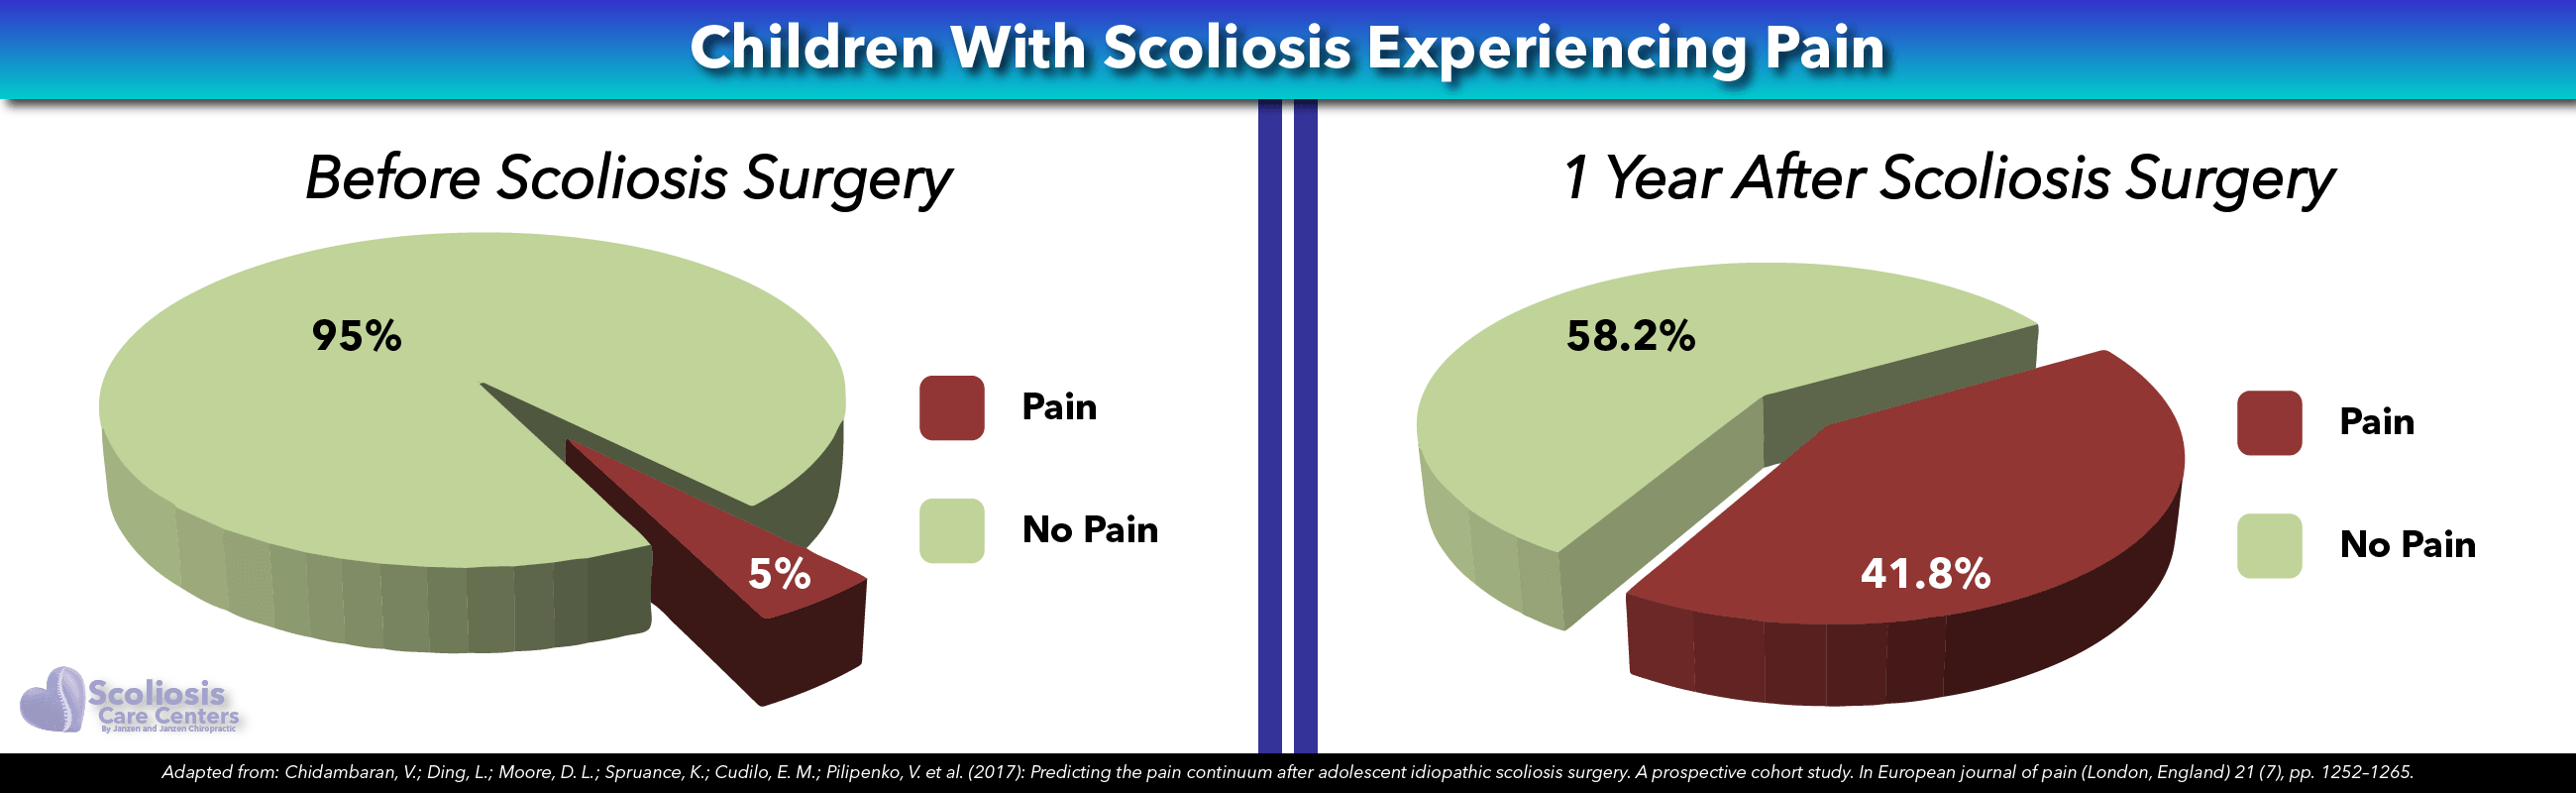 Frequency of Pain Following Scoliosis Surgery in Children